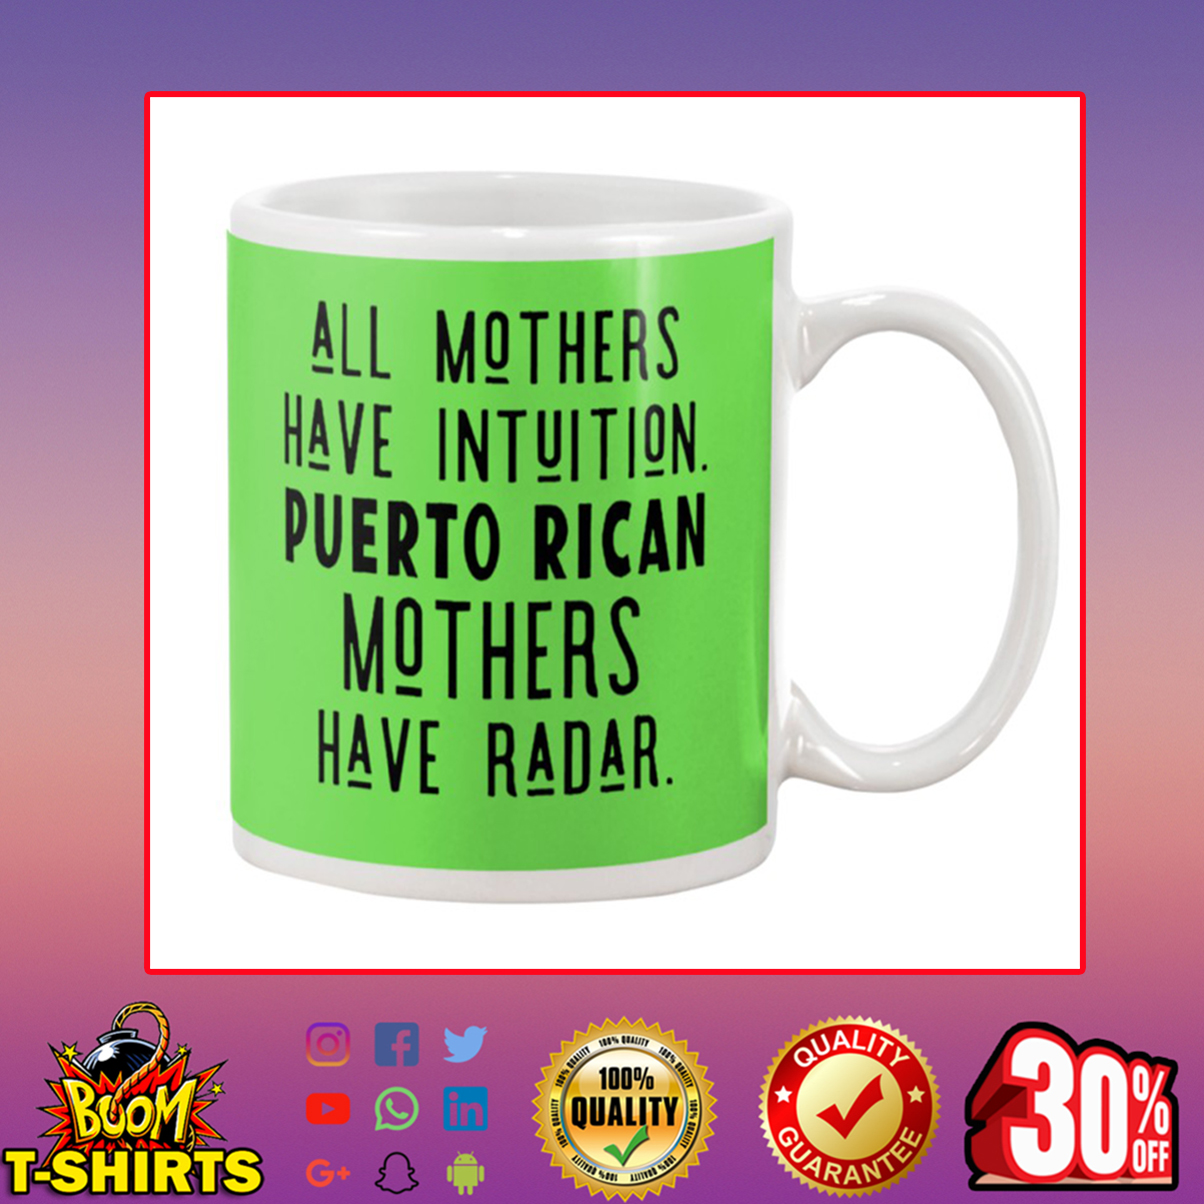 All Mothers Have Intuition Puerto Rican Mothers Have Radar Mug - kiwi